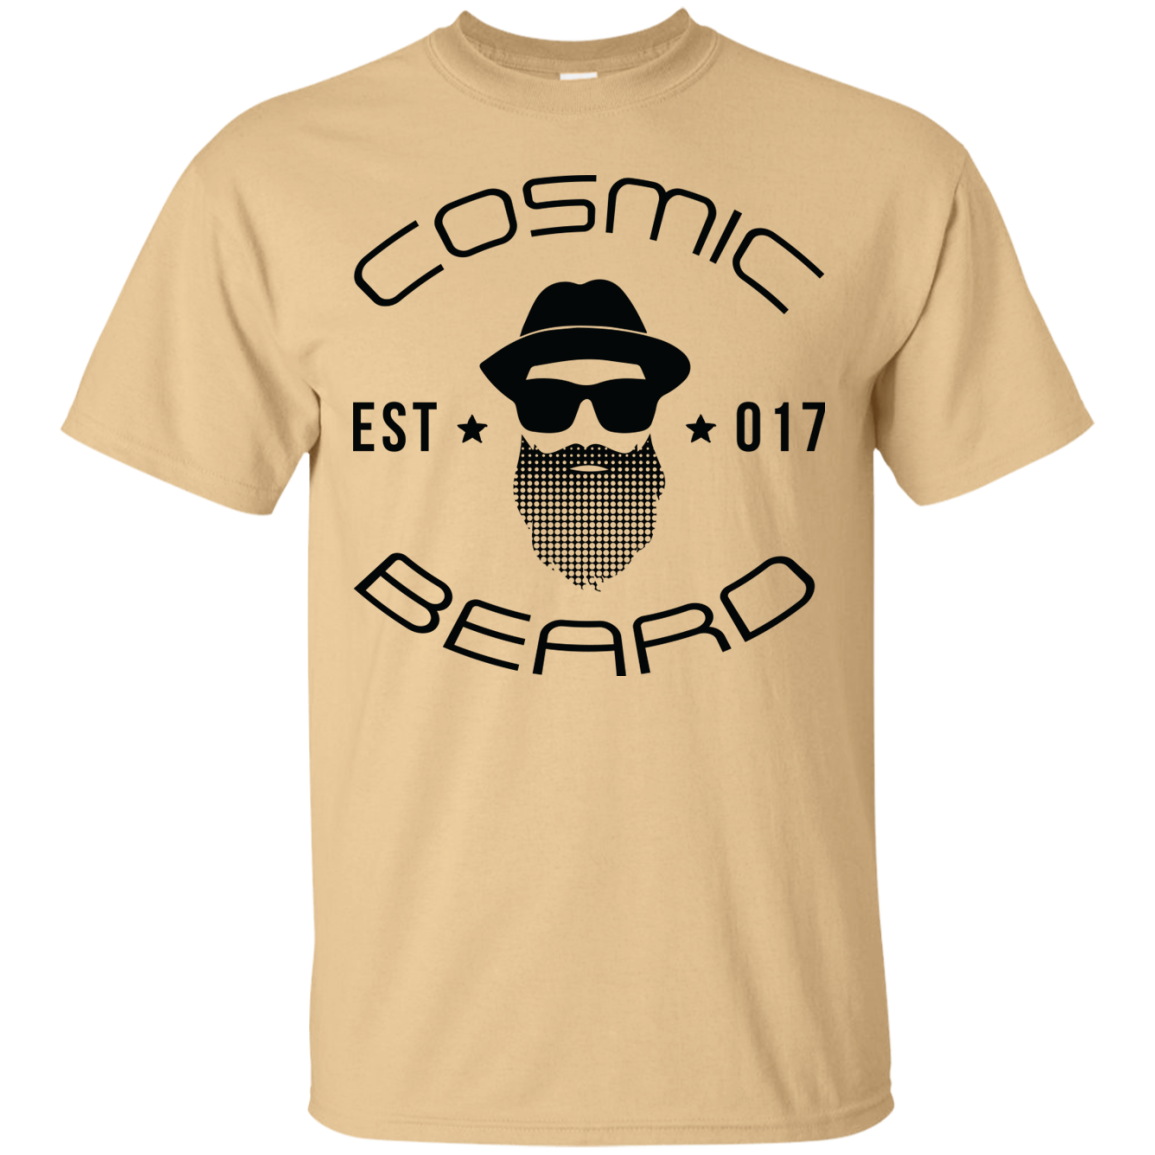 Cosmic Beard Branded T-Shirt with Black Logo